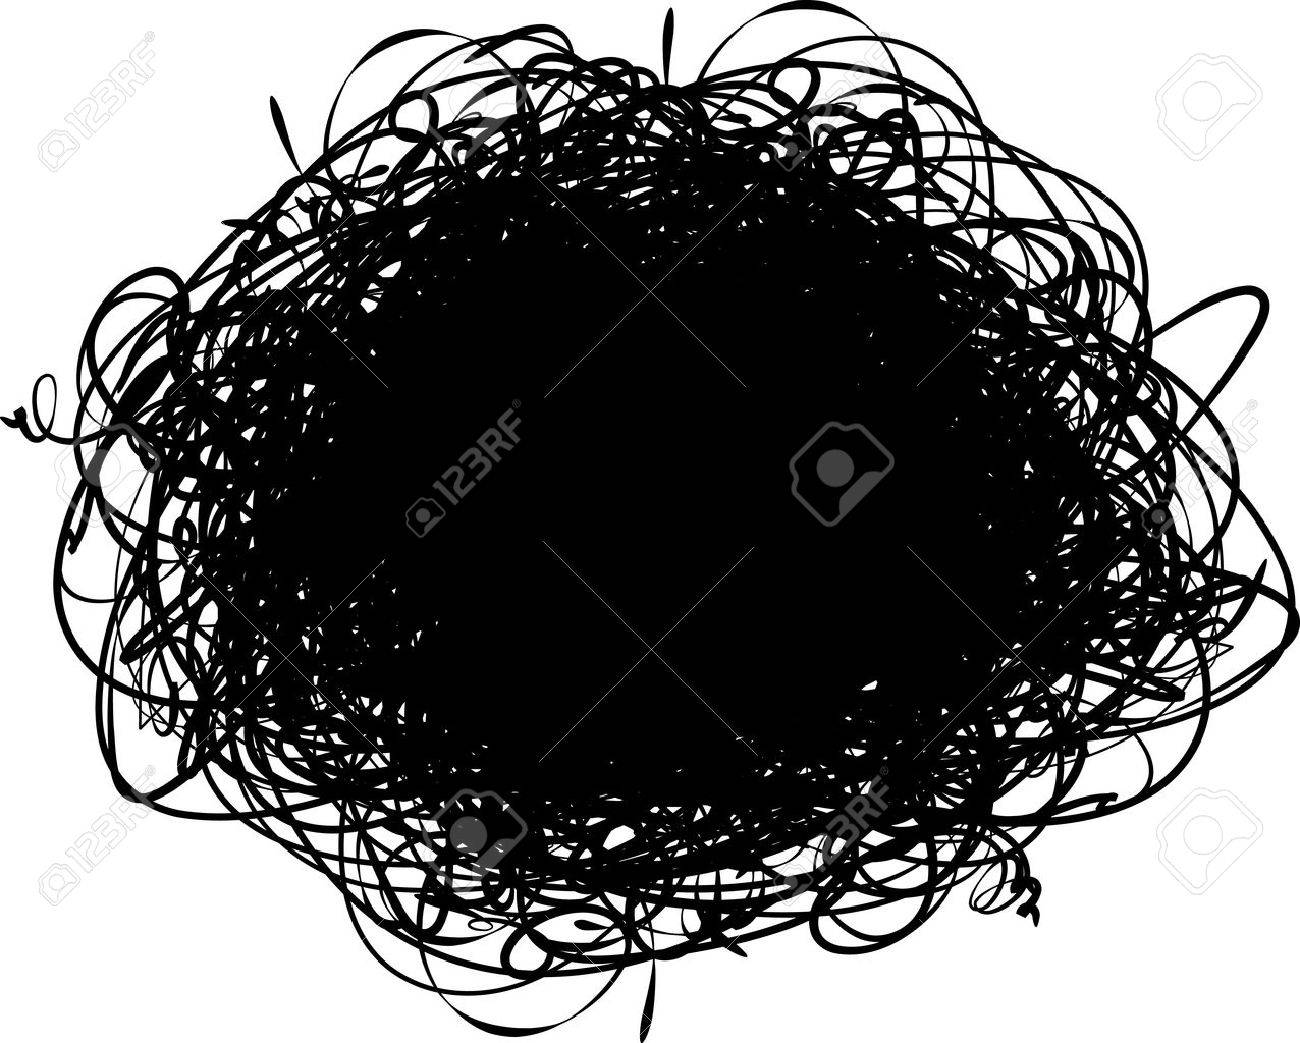 Image result for scribbled blob